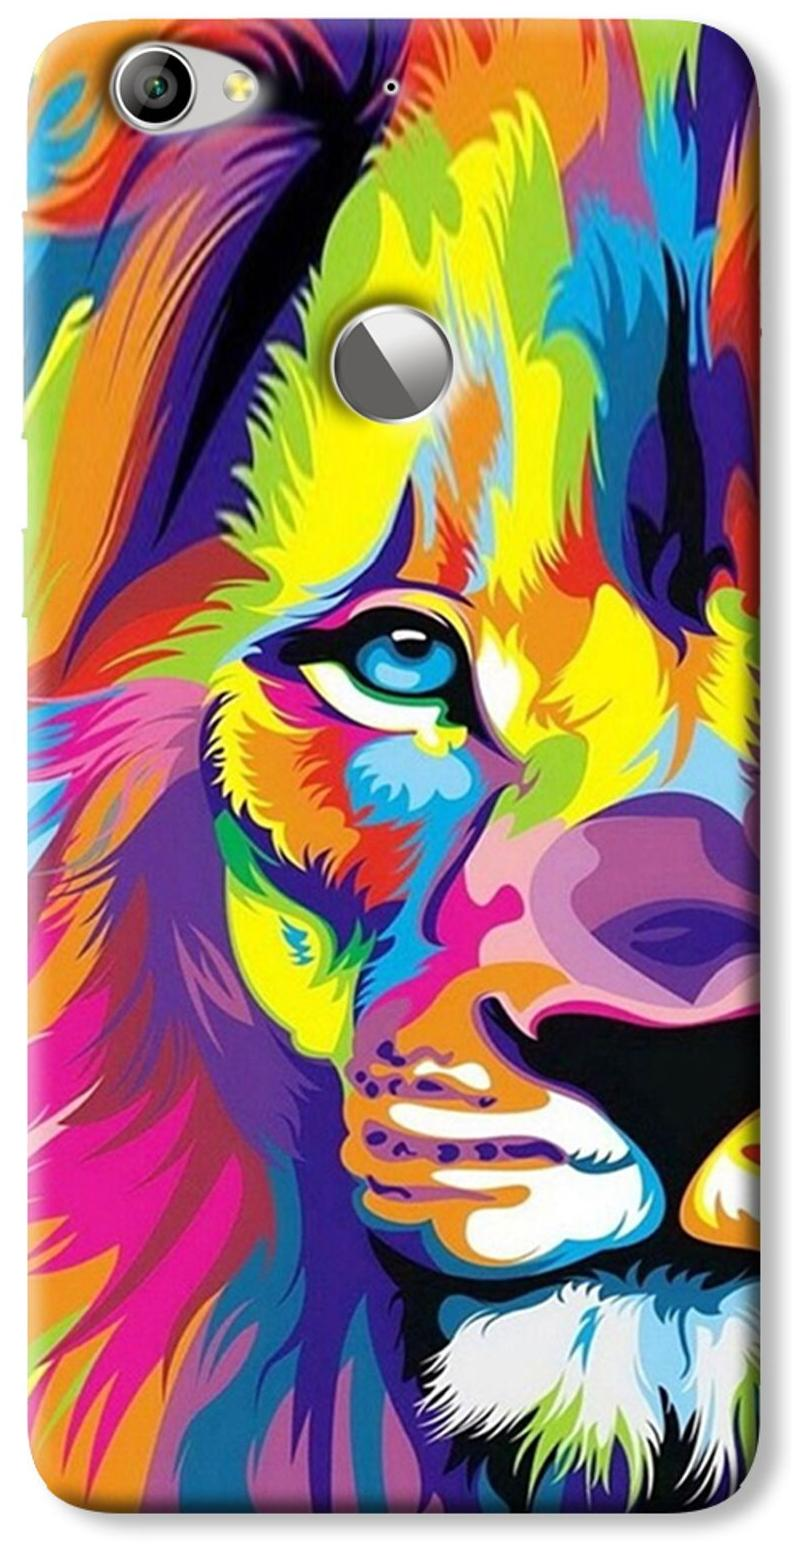 elove Designer Hybrid Printed Case Cover   [Hard PC] [Slim fit] [Lightweight] [Defender] Back Cover for LeEco 1s / LeTv Le 1s by Elove Technologies